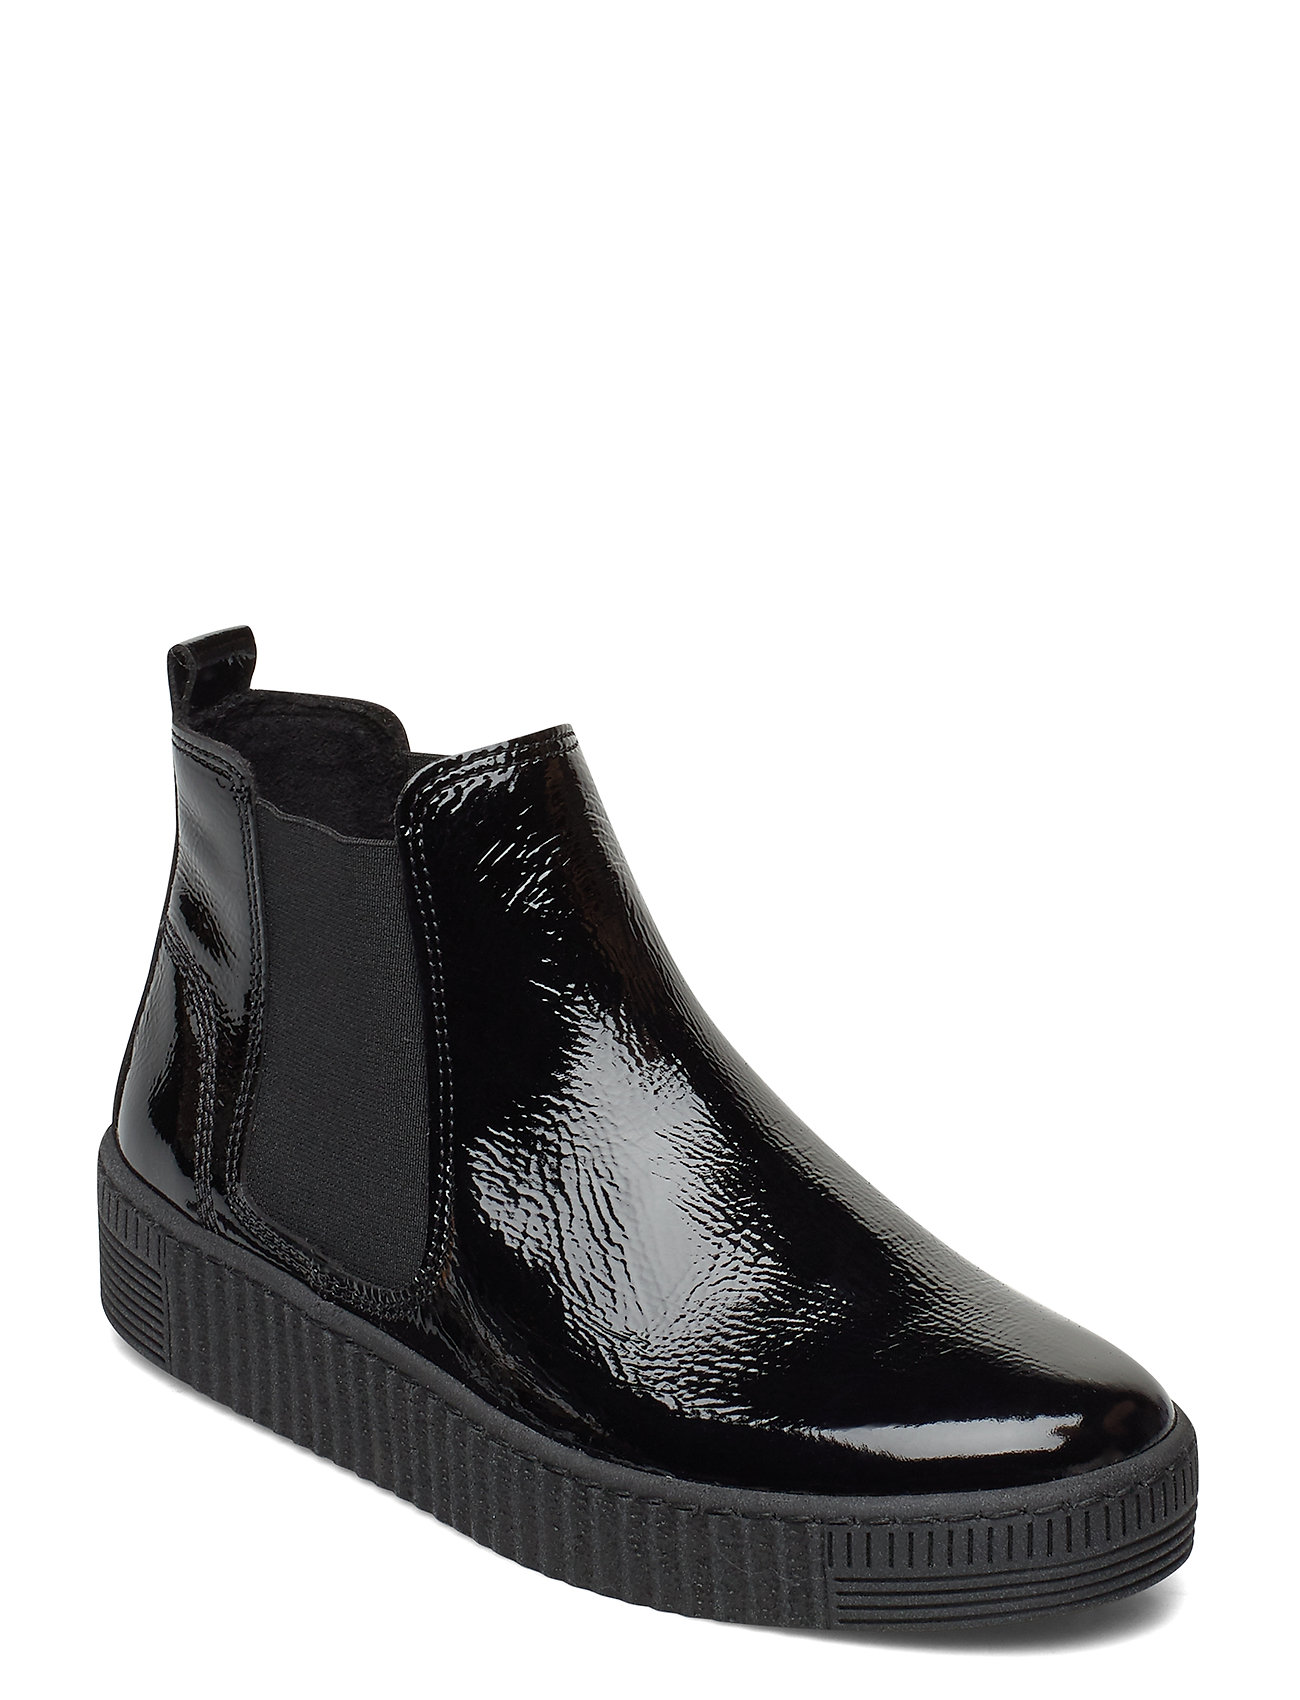 Image of Ankle Boot Shoes Boots Ankle Boots Ankle Boot - Flat Sort Gabor (3431378119)